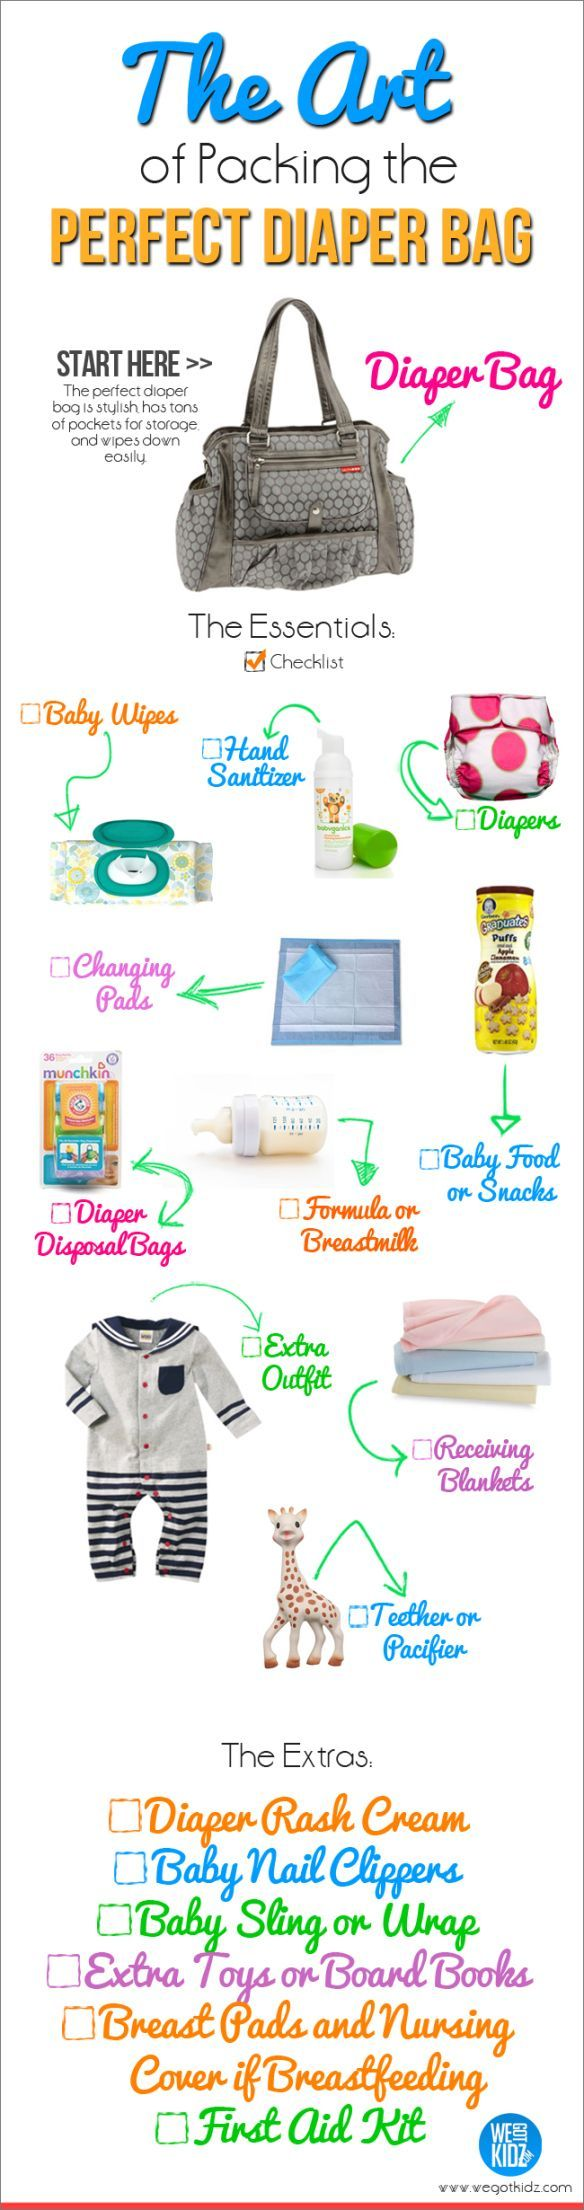 What to Pack in a Diaper Bag: How to Pack One Like a Pro - Because there is an art to packing that diaper bag. diapers from www.diaperdabbler.com in perfectly packed 3 packs, fit beautifully in a diaper bag. We Got Kidz